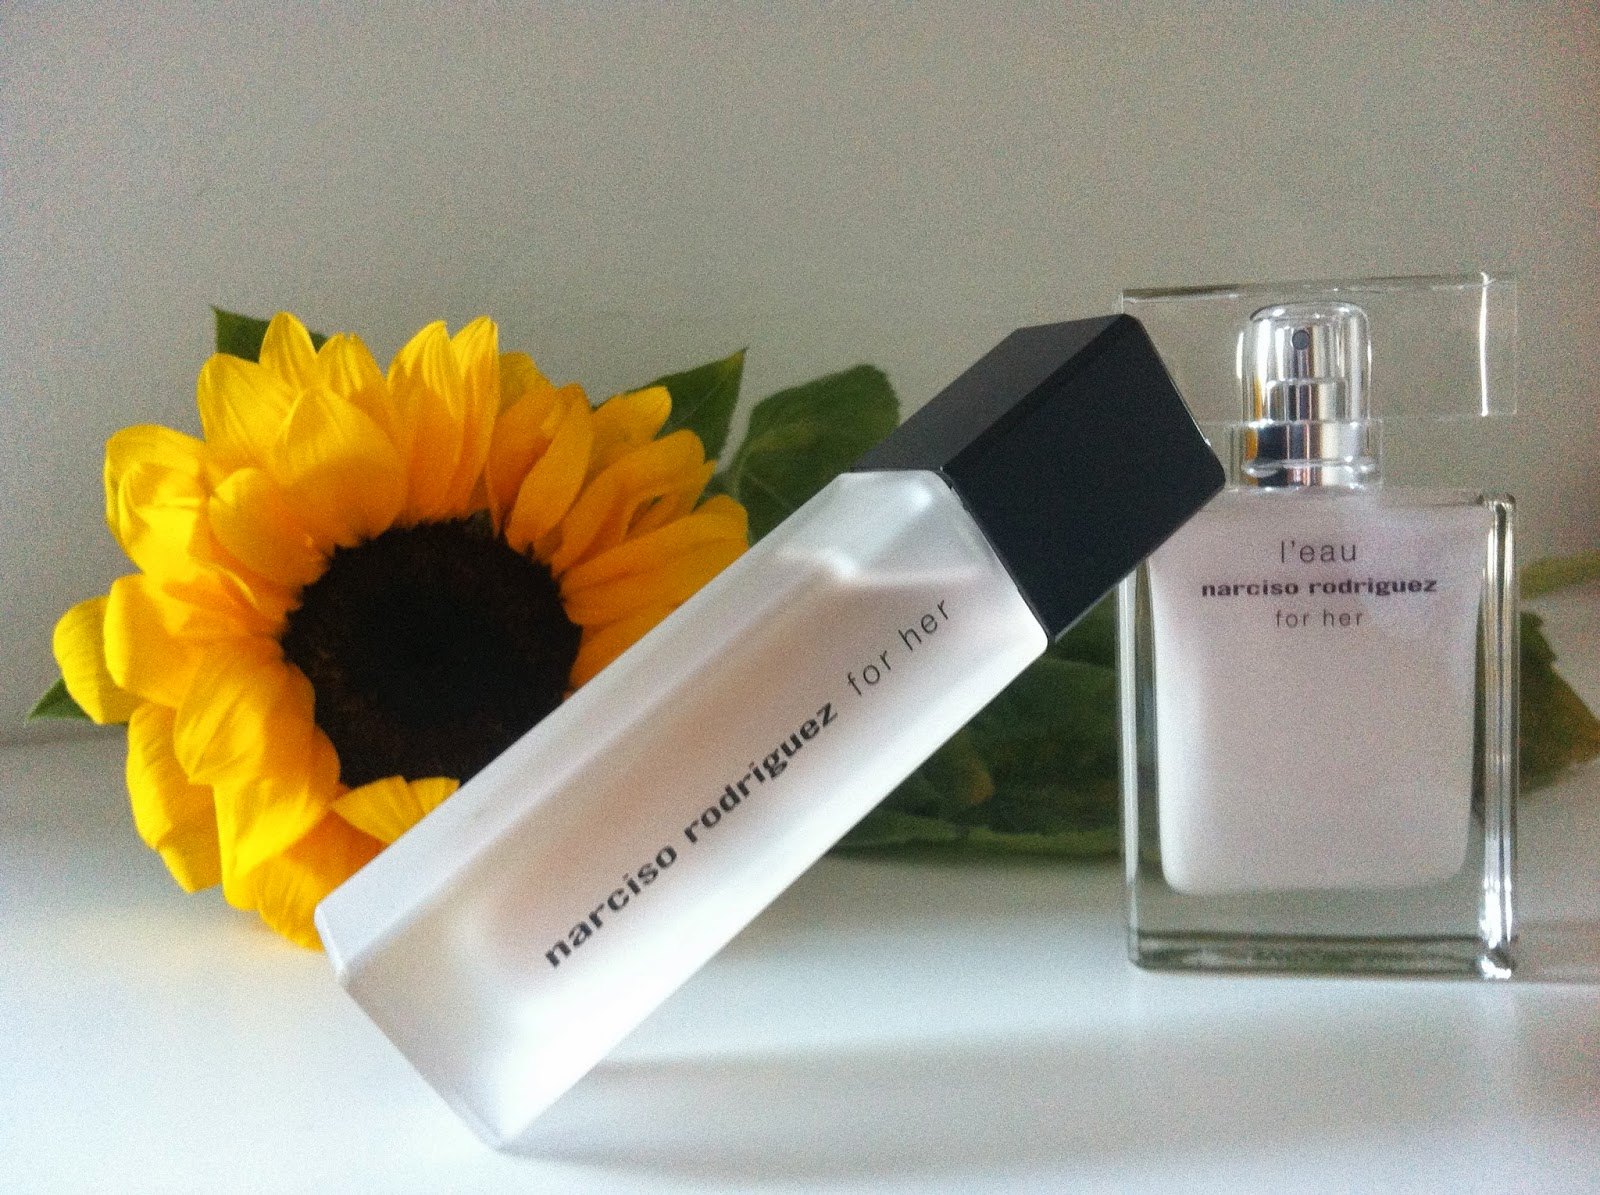 profumi estate 2014, narciso rodriguez for her l'eau, narciso rodriguez for her hair mist, narciso rodriguez profumi